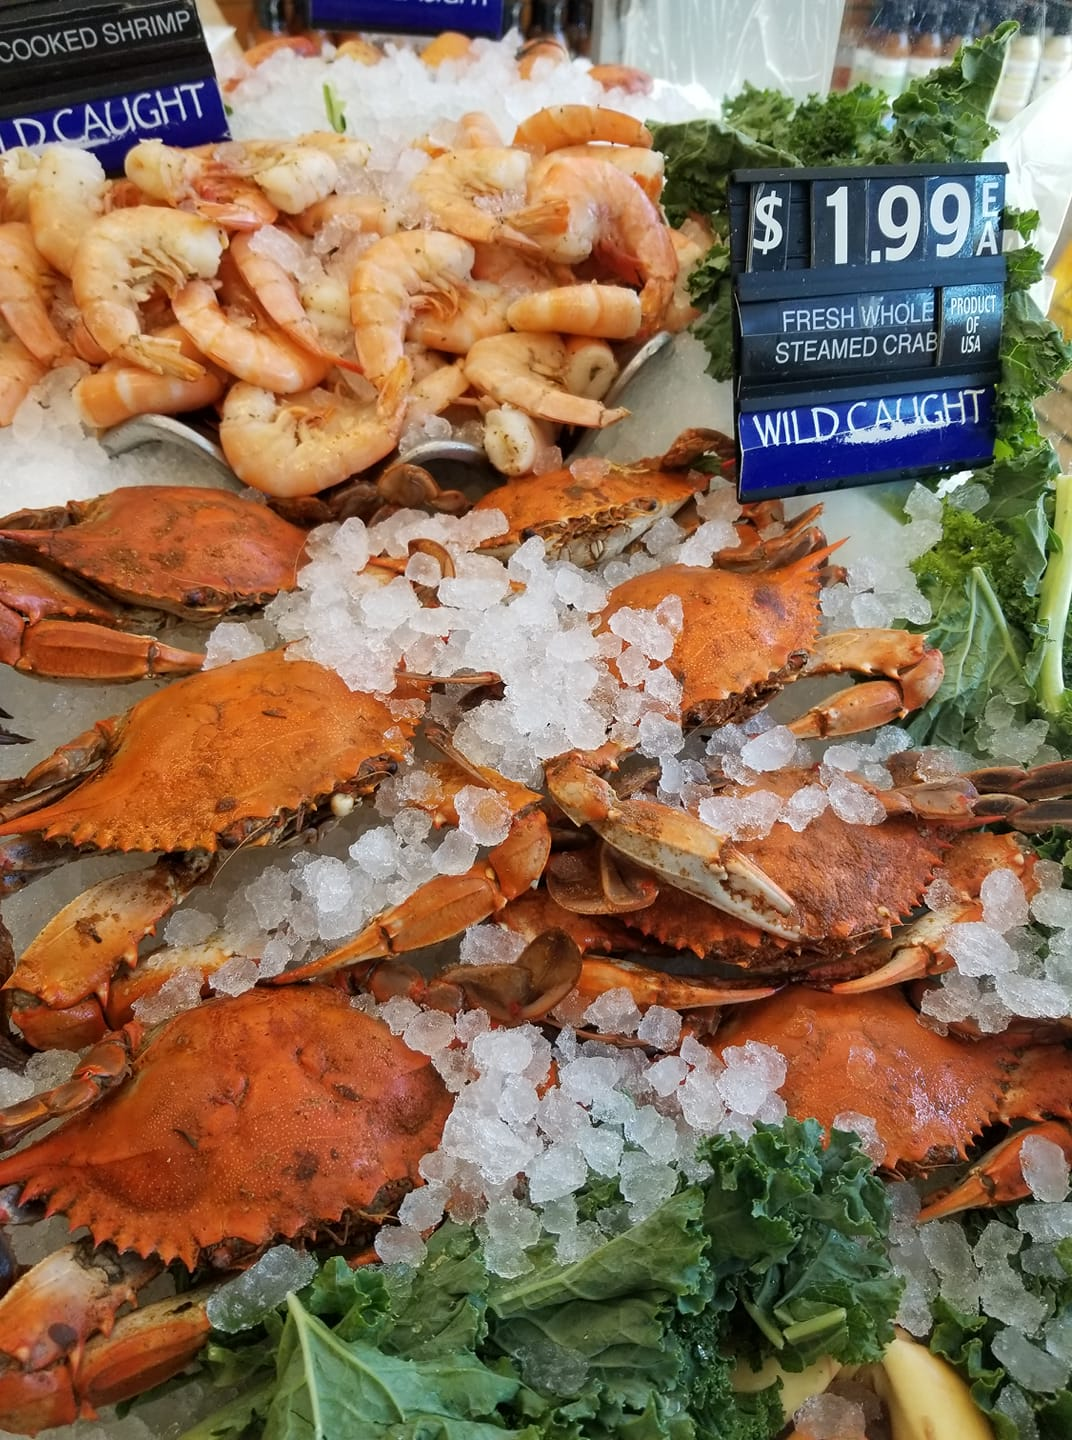 A bundle of wild caught red crabs and shrimp on ice in the cold case at seafood market Kathleen's Catch